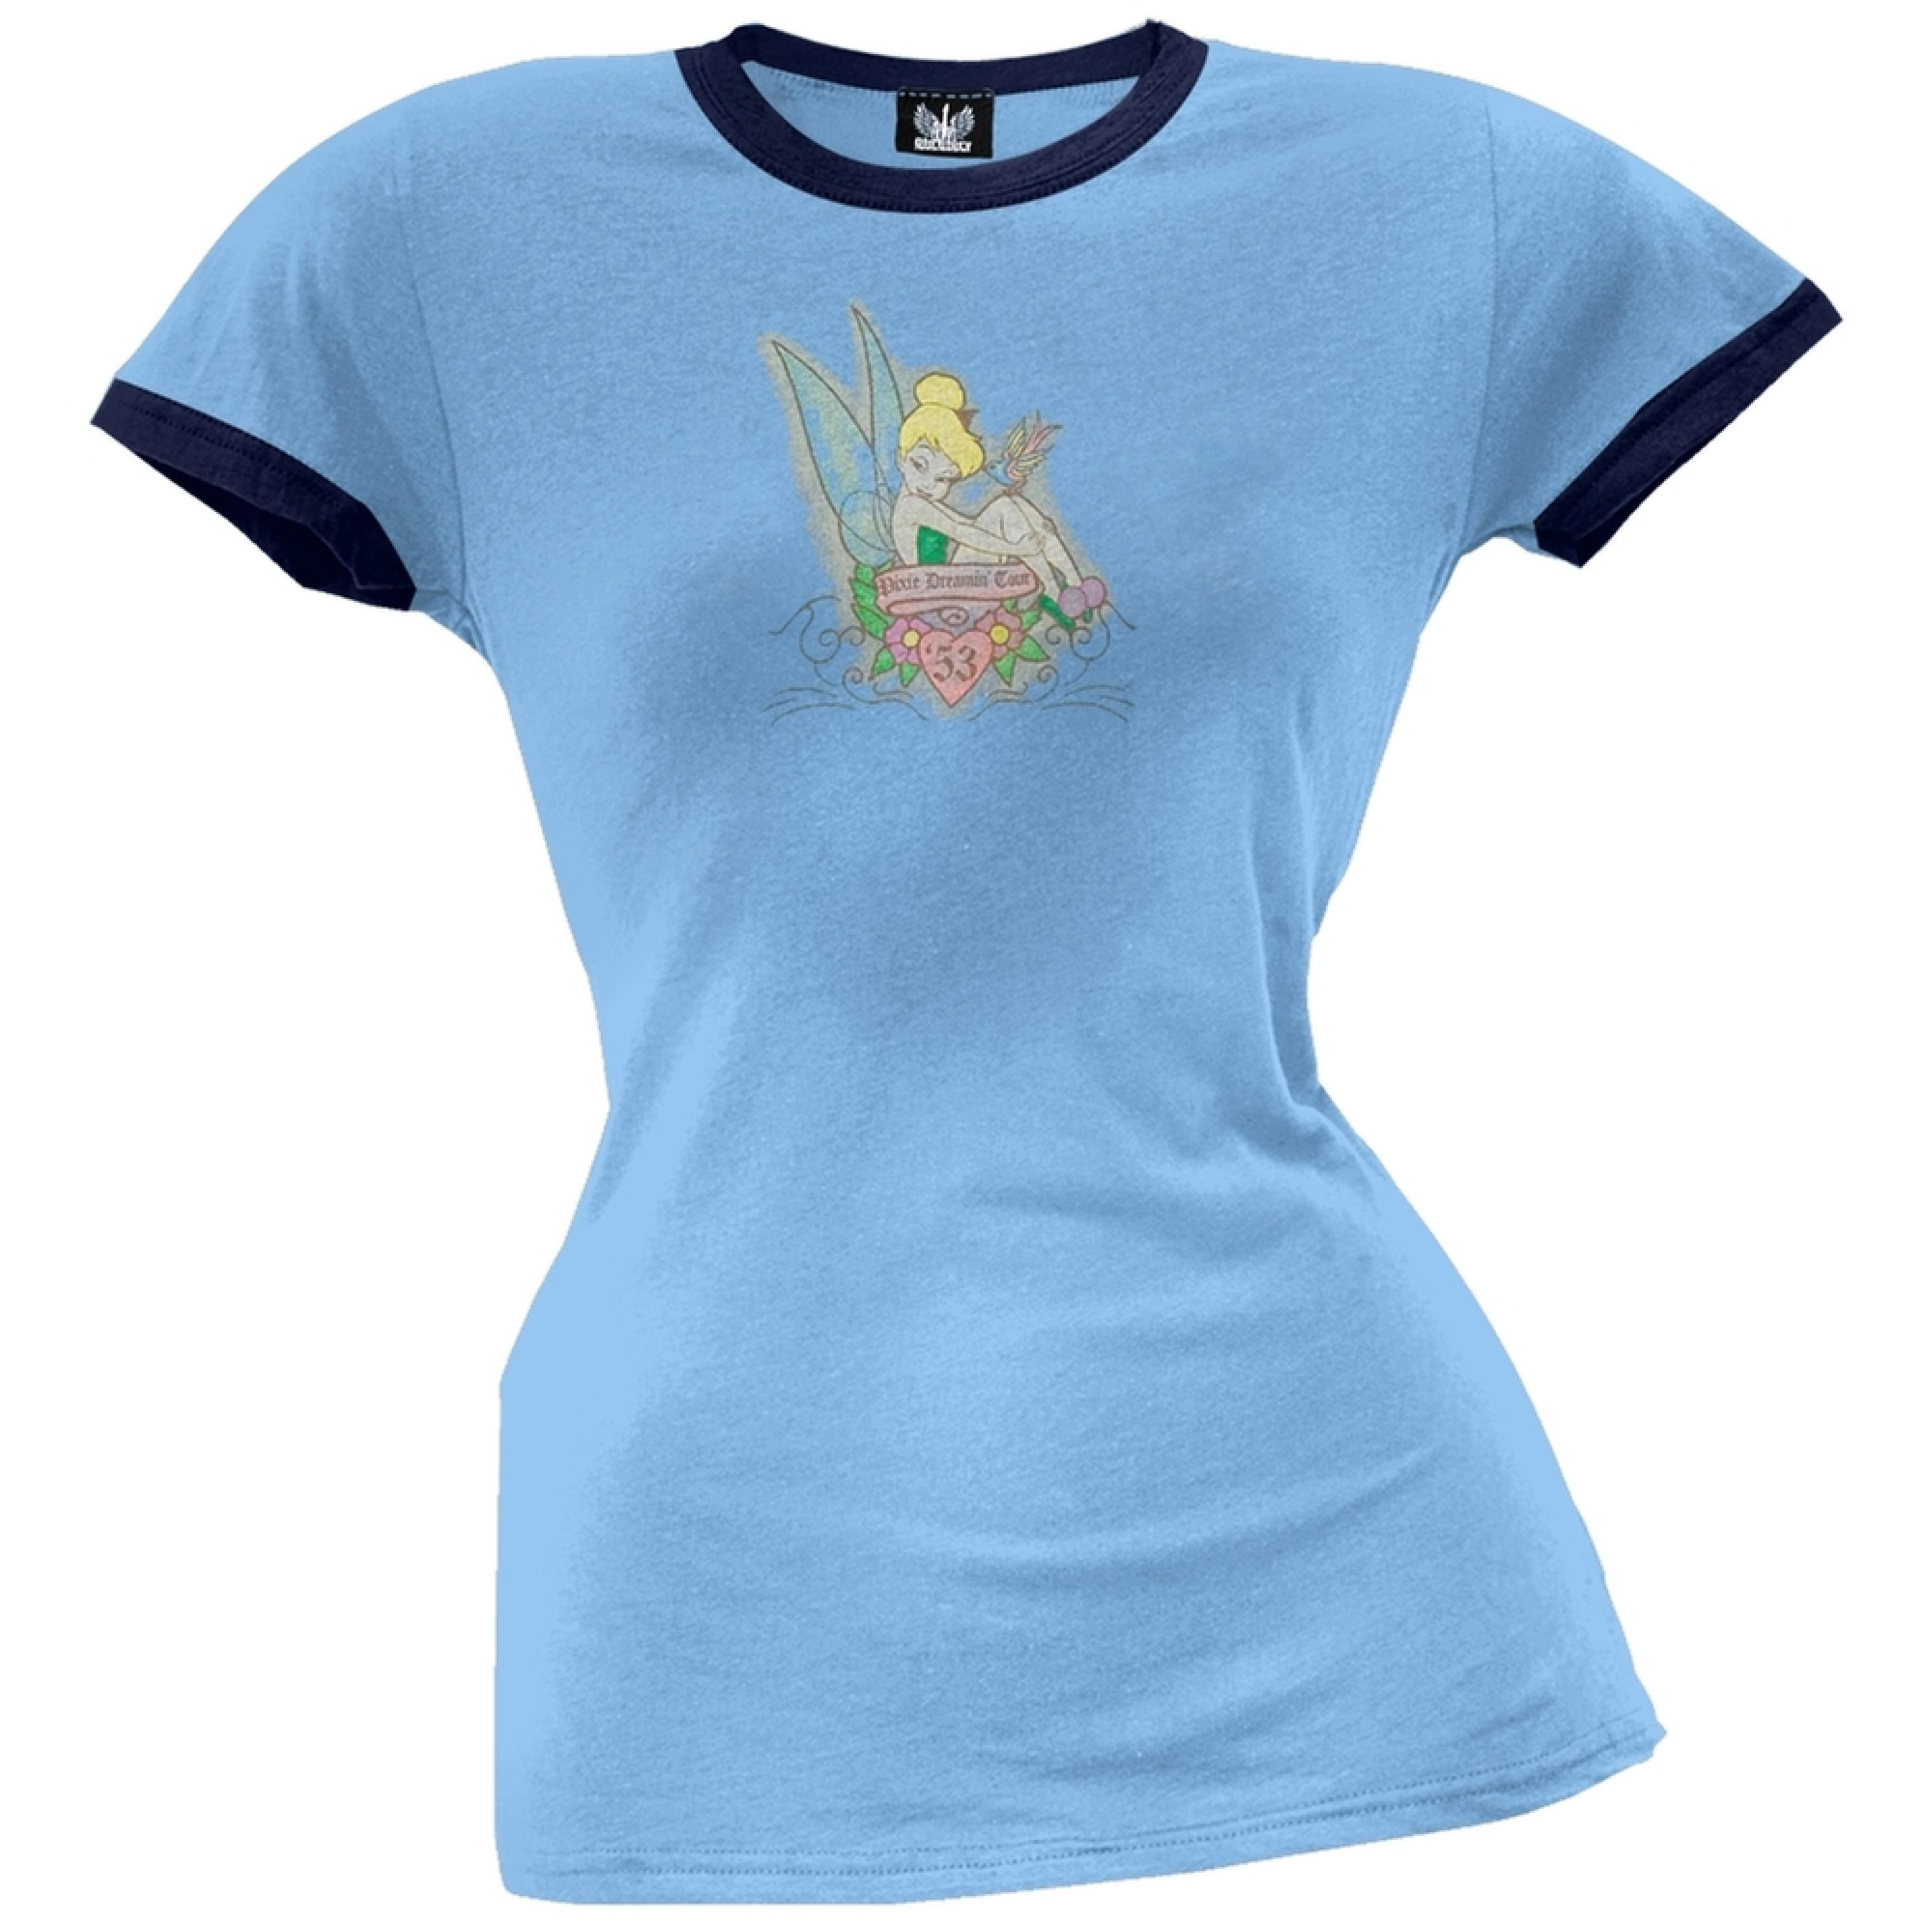 Tinkerbell - Pixie Dreamin' Juniors Ringer T-Shirt